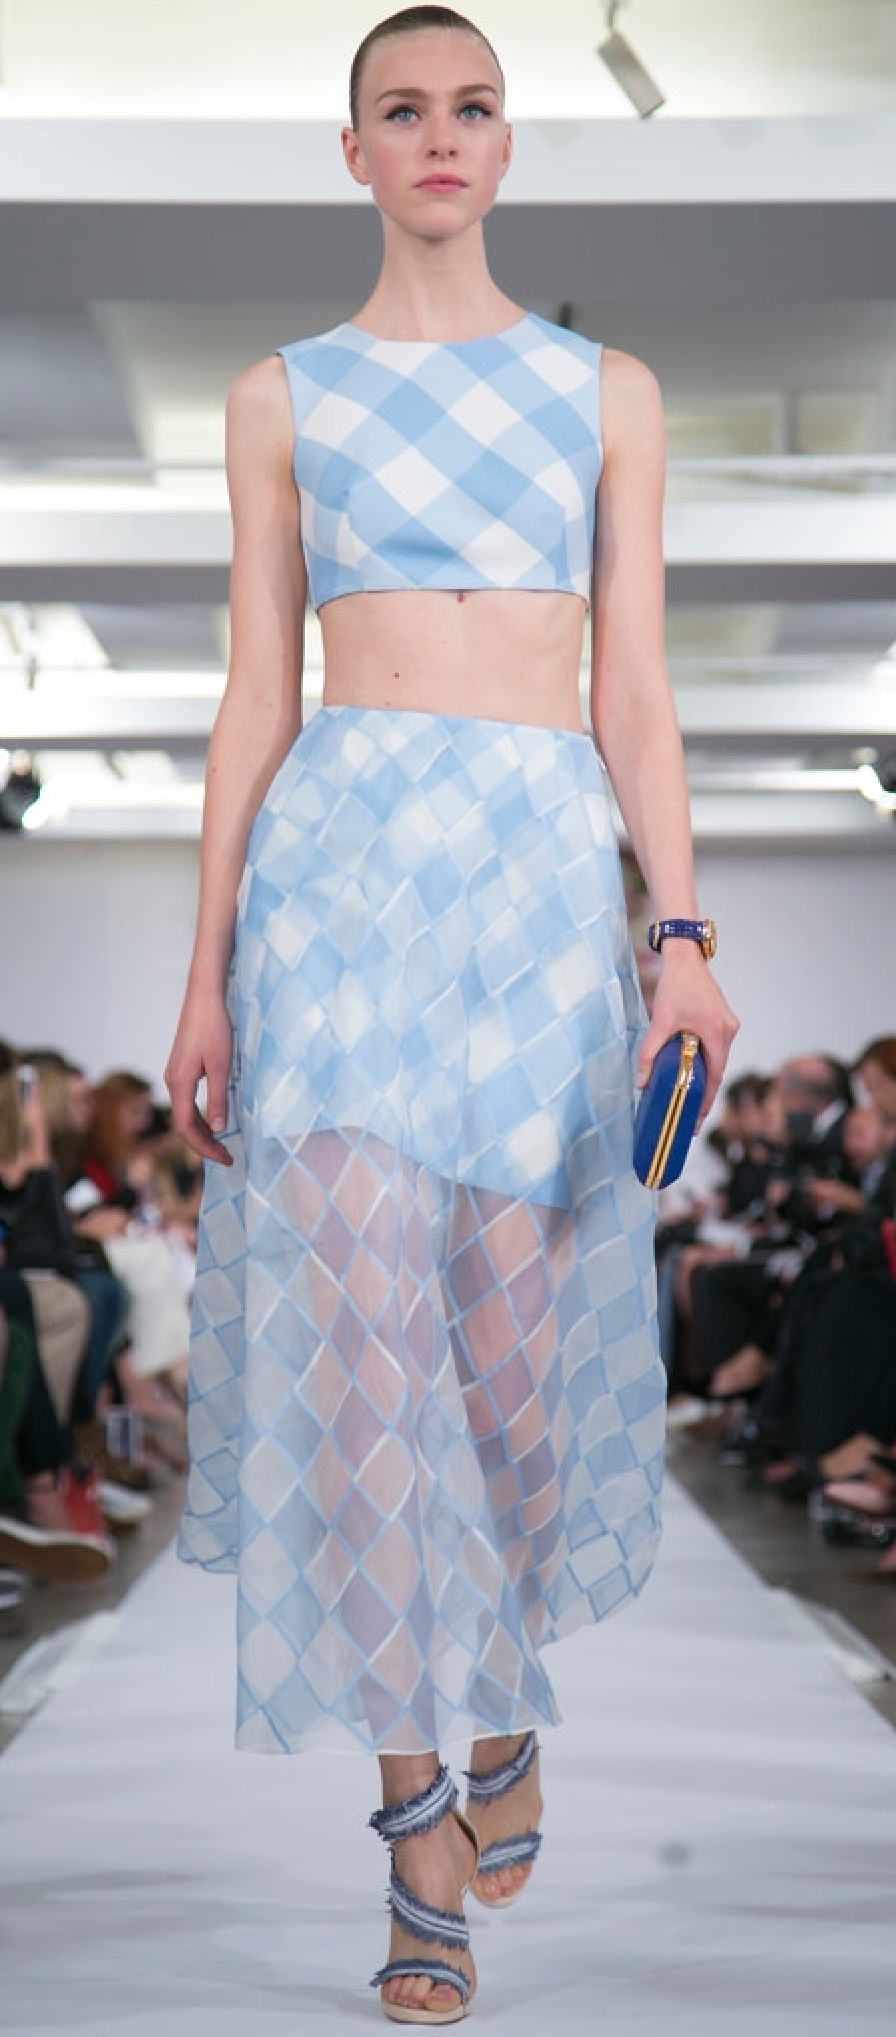 Oscar DeLa Renta uses a sheer patterned check as an ankle length skirt over a solid white mini.